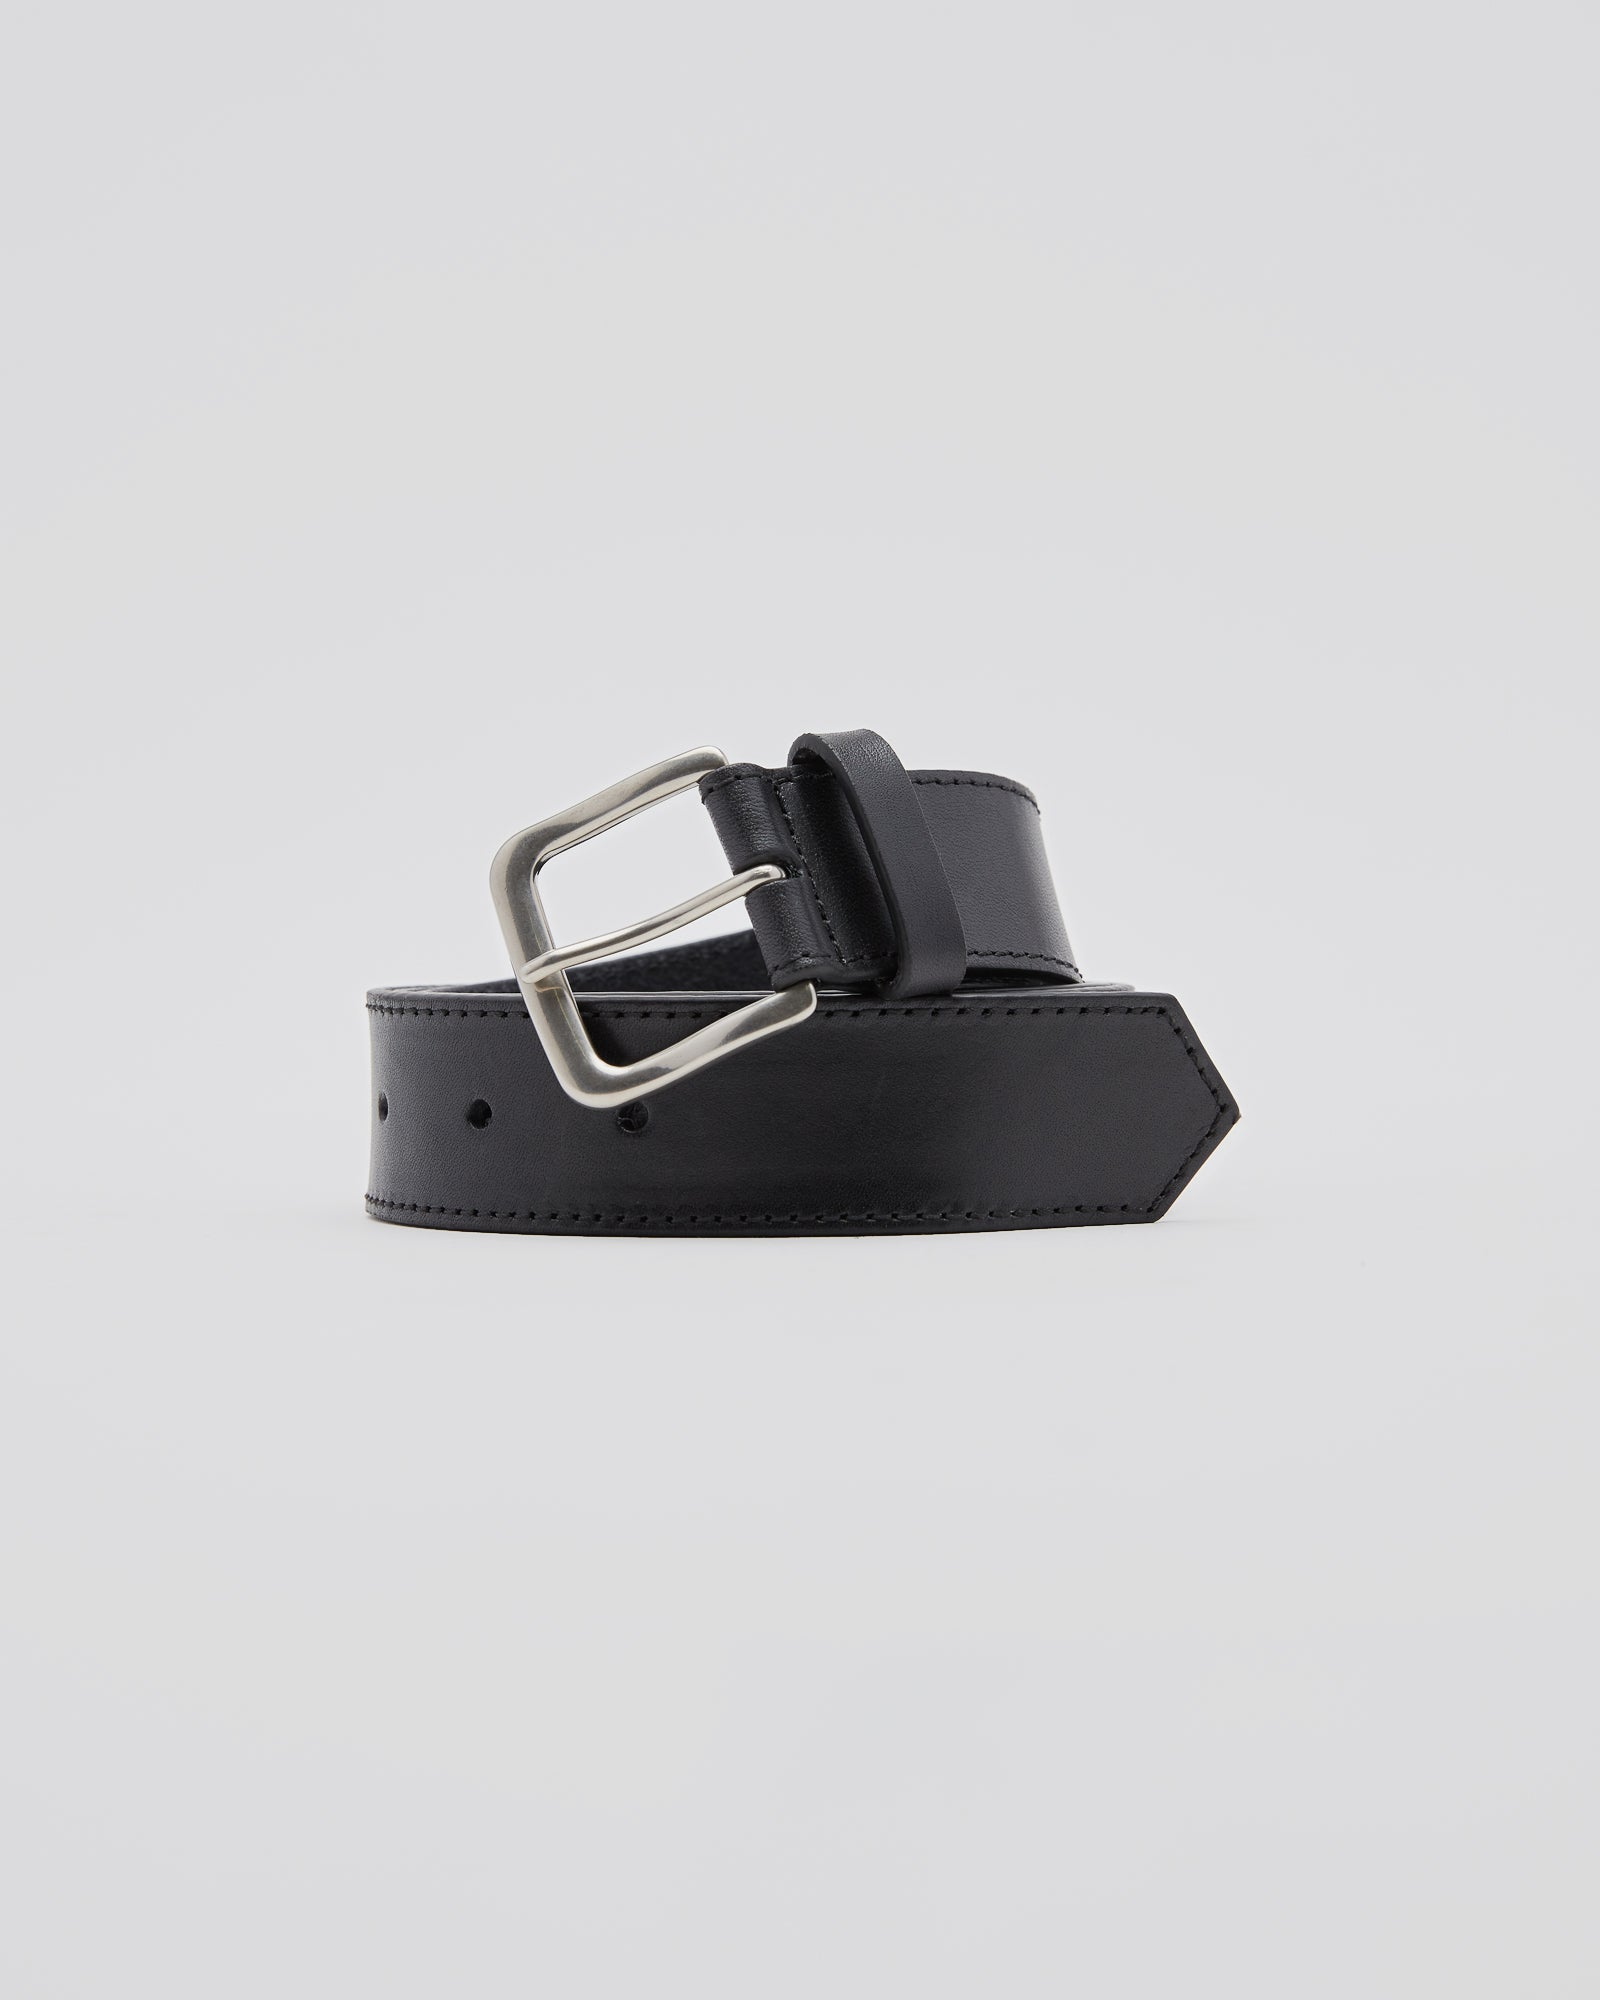 202 001 Belt in Black